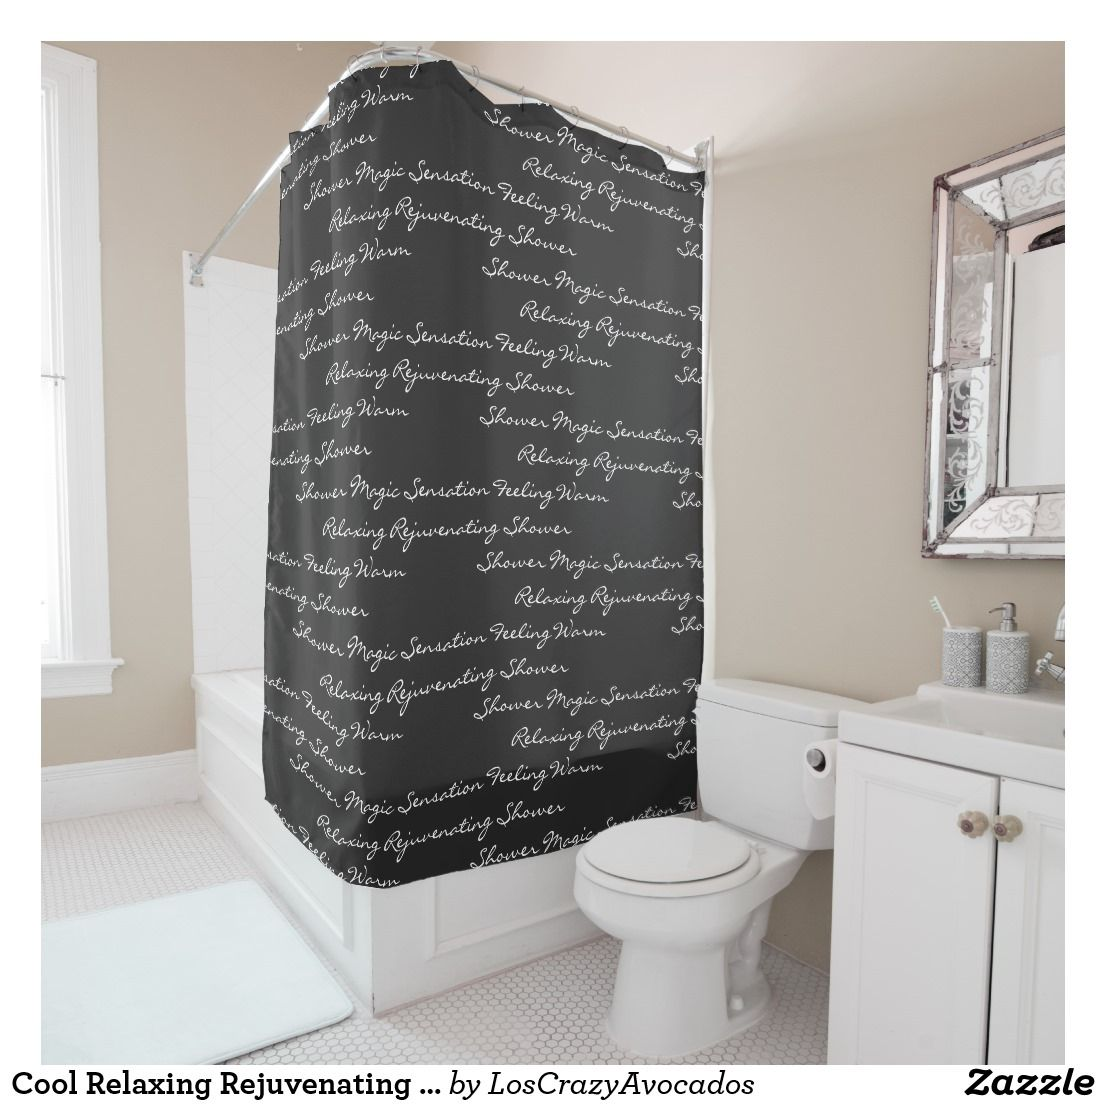 Cool Relaxing Rejuvenating Words Shower Curtain Zazzle Com Shower Curtain Curtains Cool Stuff